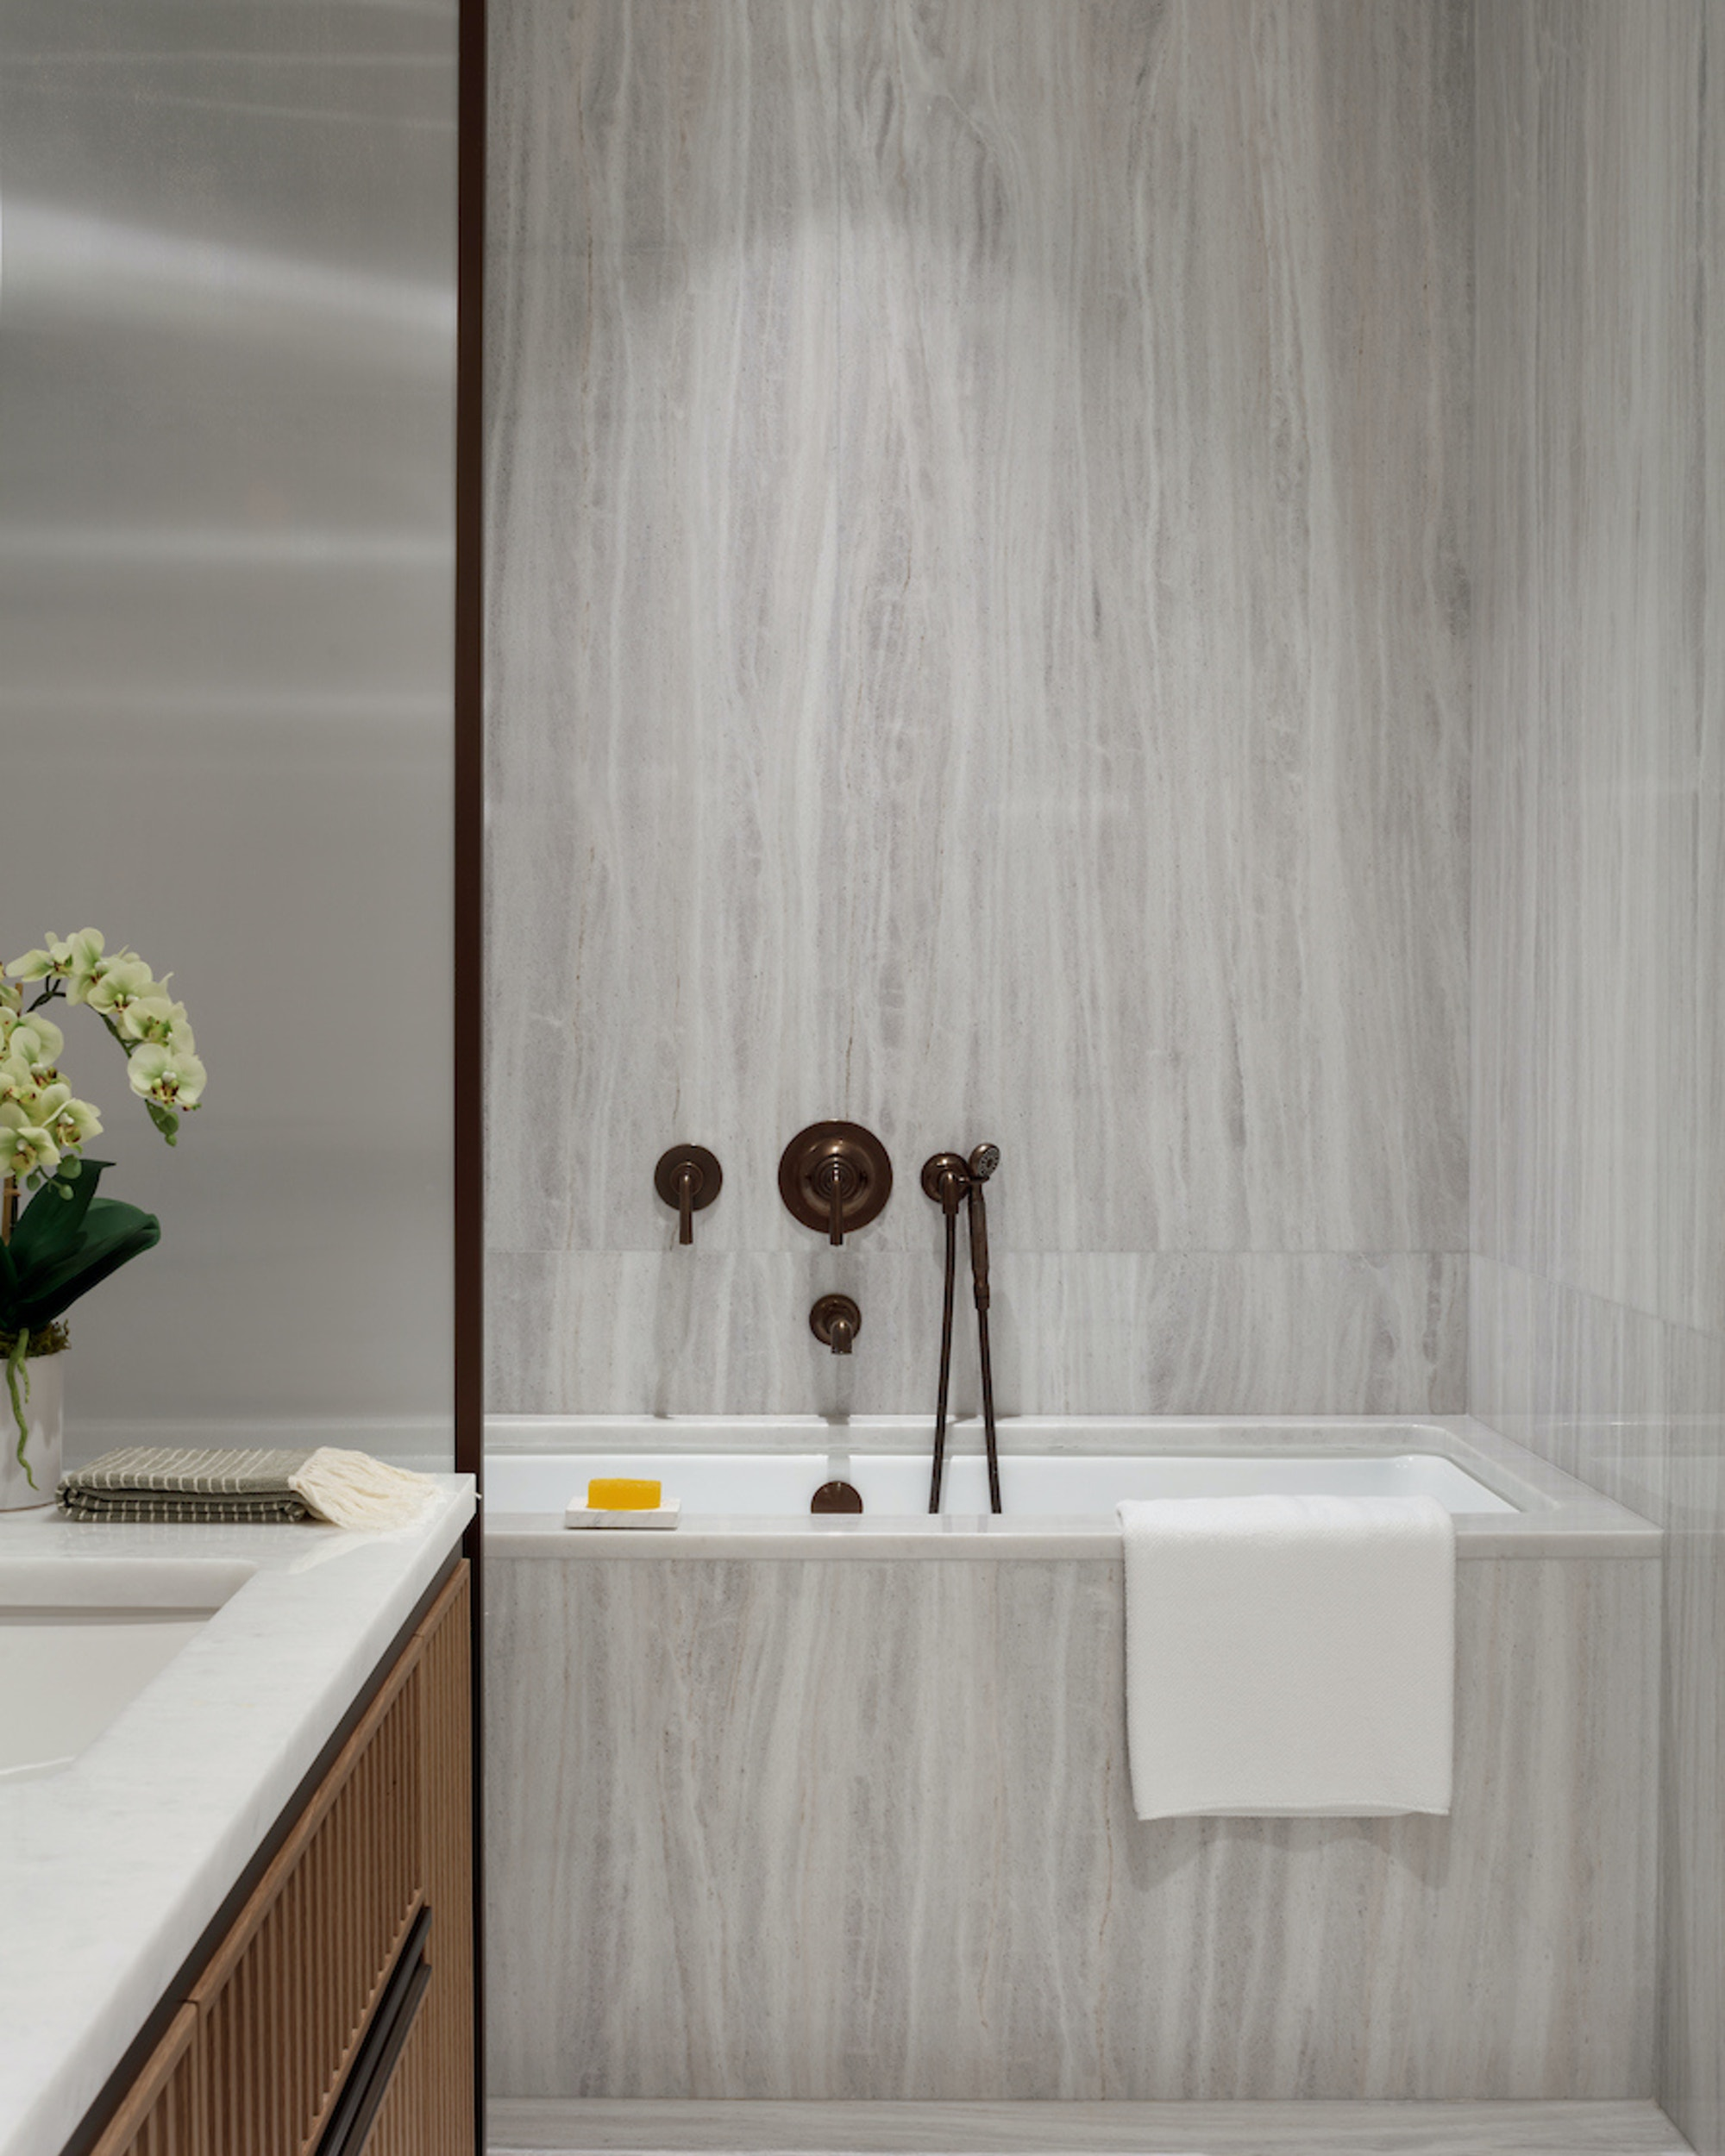 12 Lantern House March and White Design Model Shower Photo Courtesy of Related Companies by Colin Miller